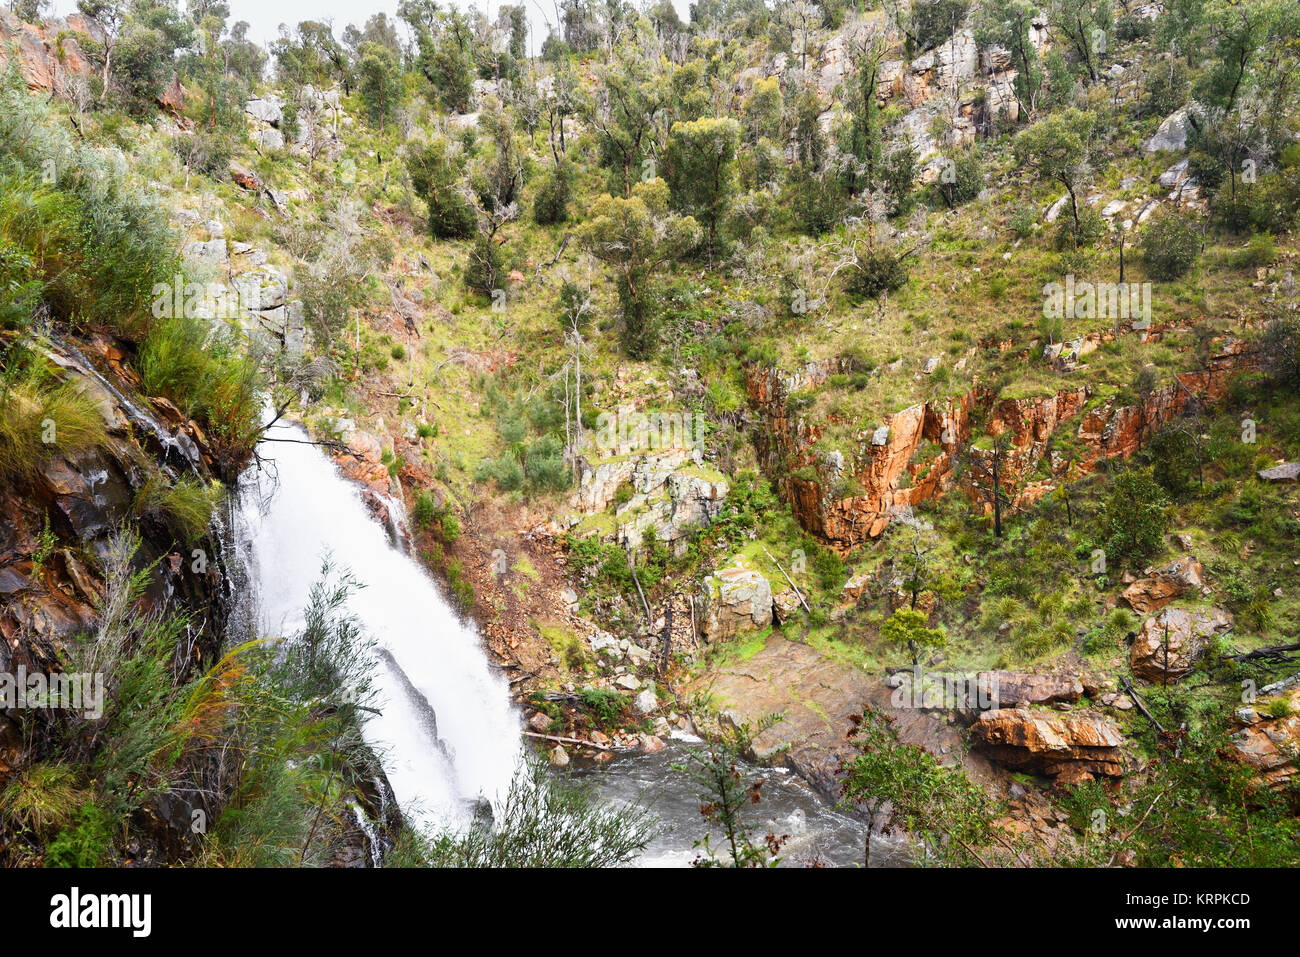 Australia Victoria. The Mackenzie Falls in The Grampians National Park is surrounded by greenery as spring begins. - Stock Image